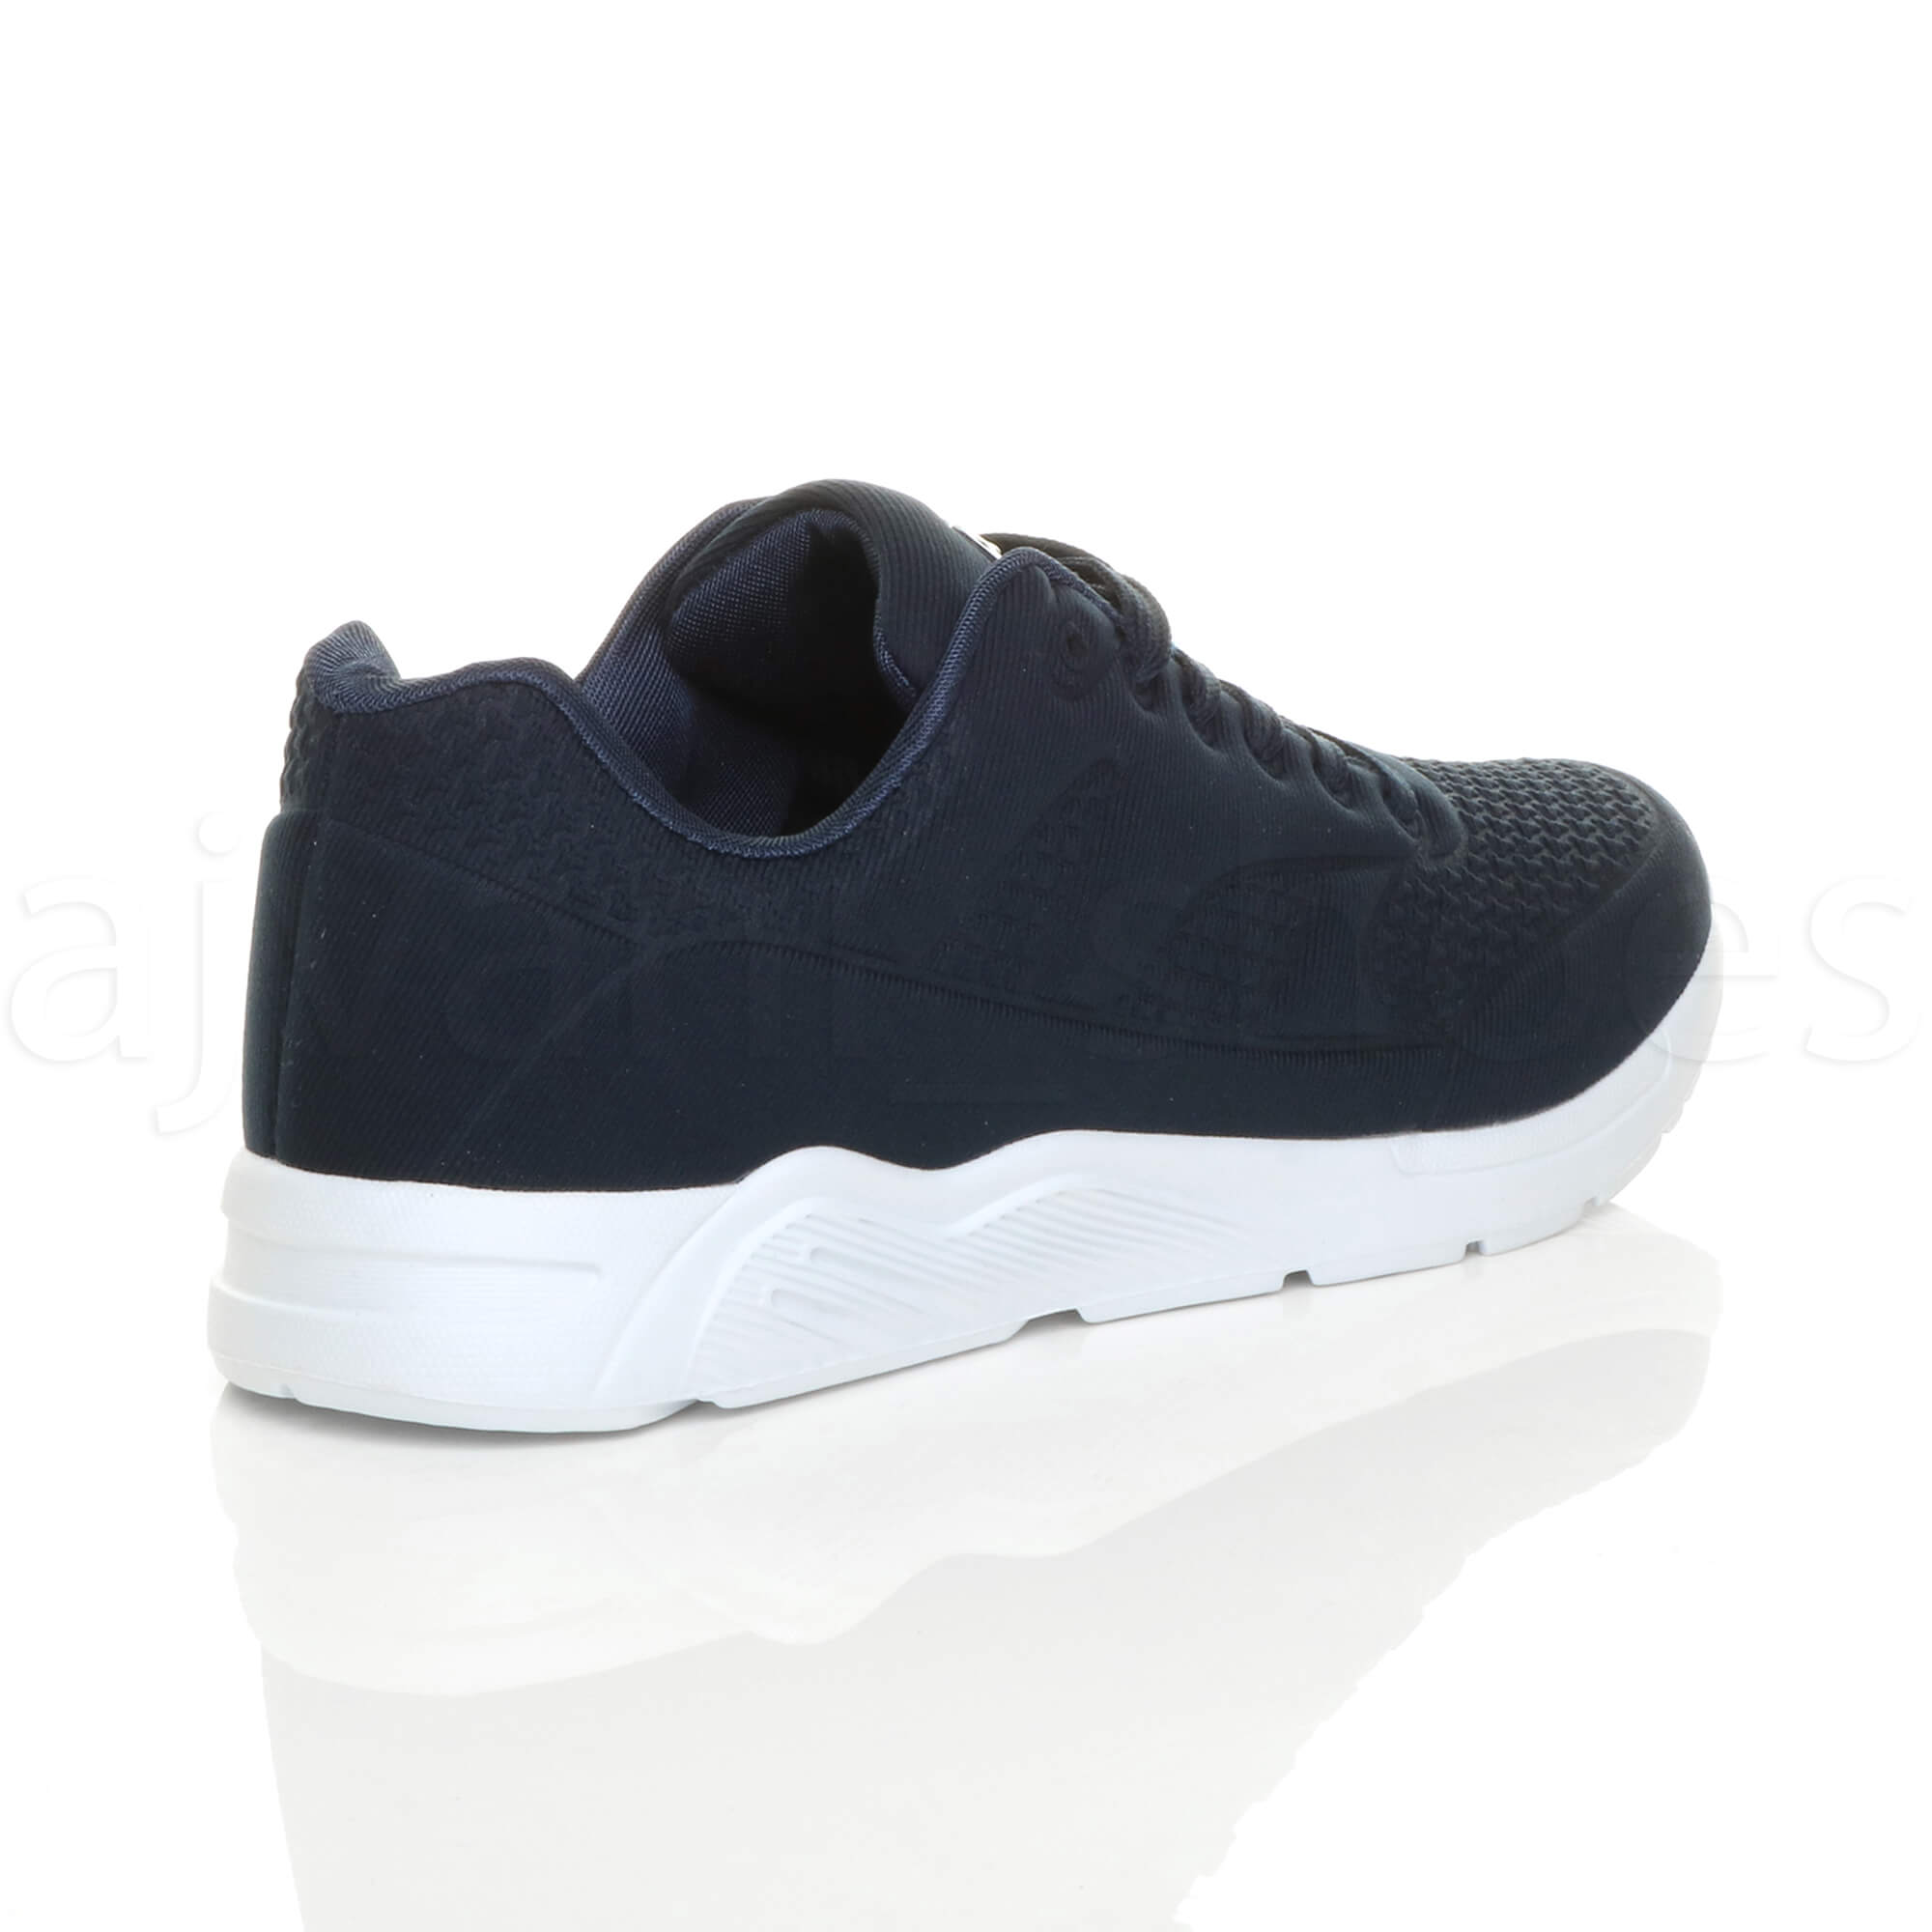 MENS-LACE-UP-FLEXIBLE-SOLE-RUNNING-SPORT-GYM-FITNESS-TRAINERS-SNEAKERS-SIZE miniatuur 13